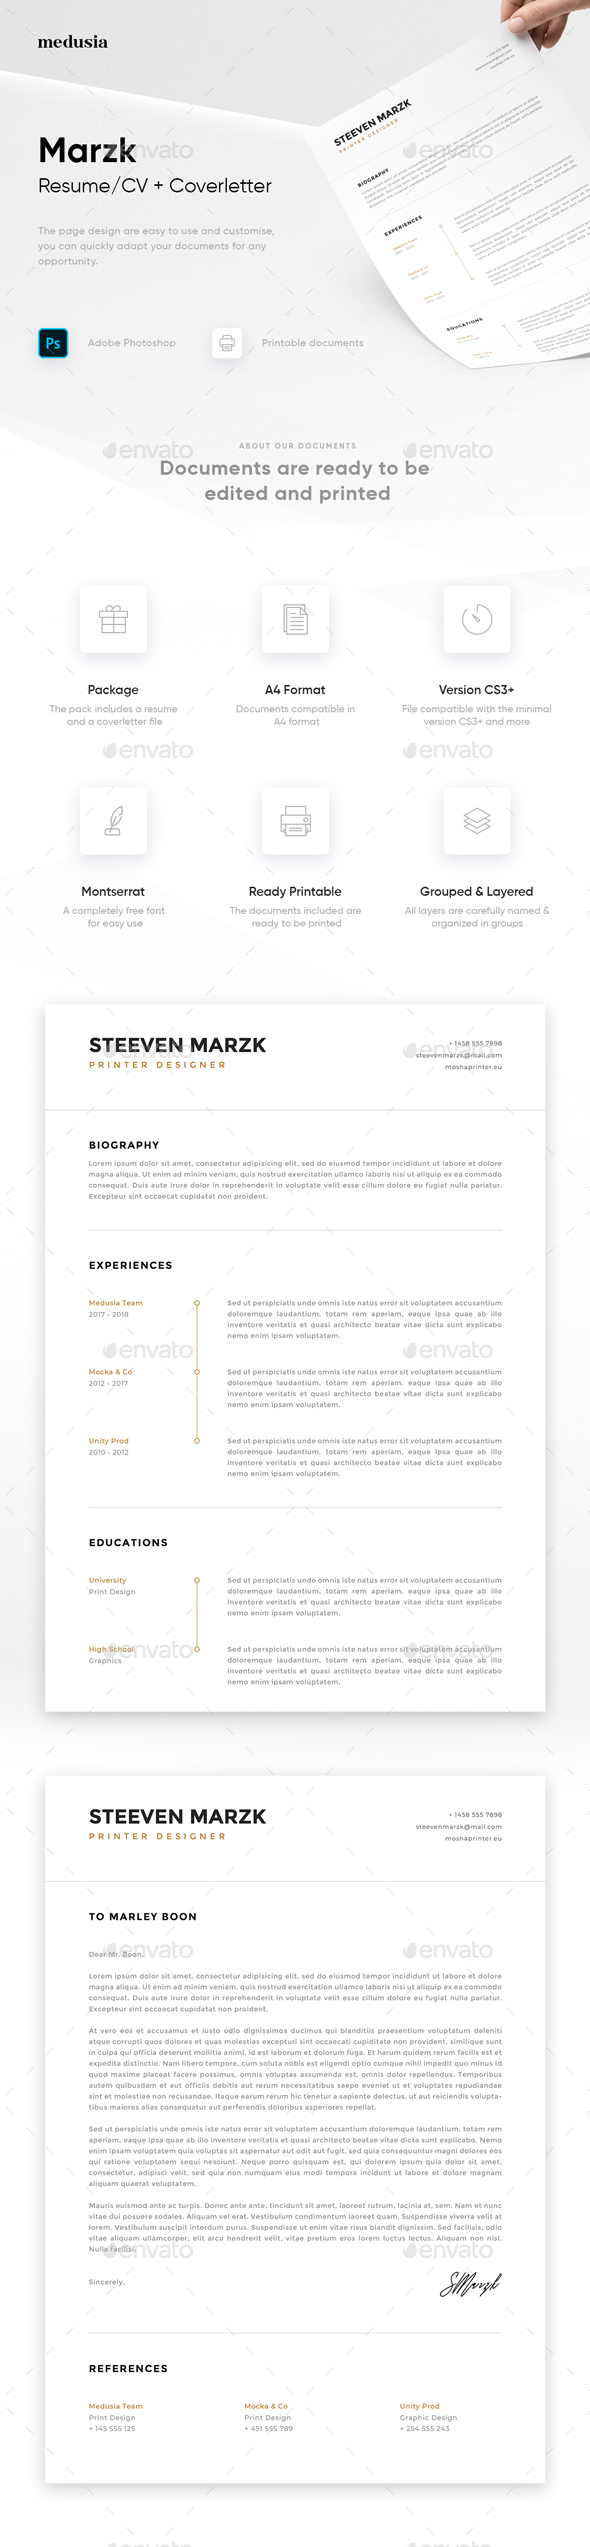 Cover Letter Graphics Designs  Templates From Graphicriver